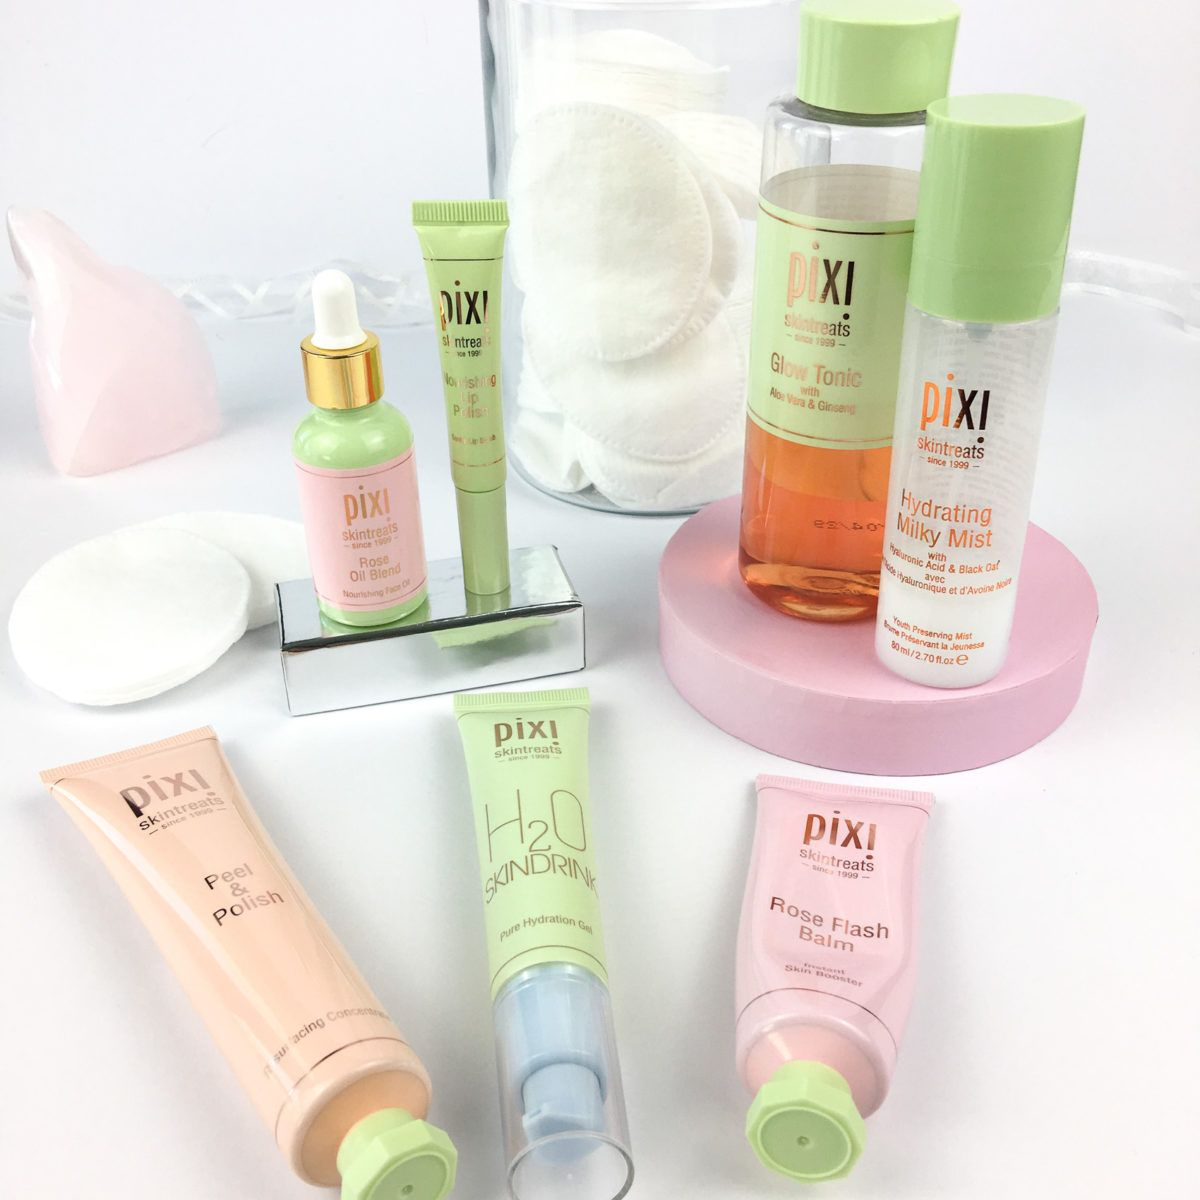 Pixi Beauty Review Luxurious Products at an Affordable